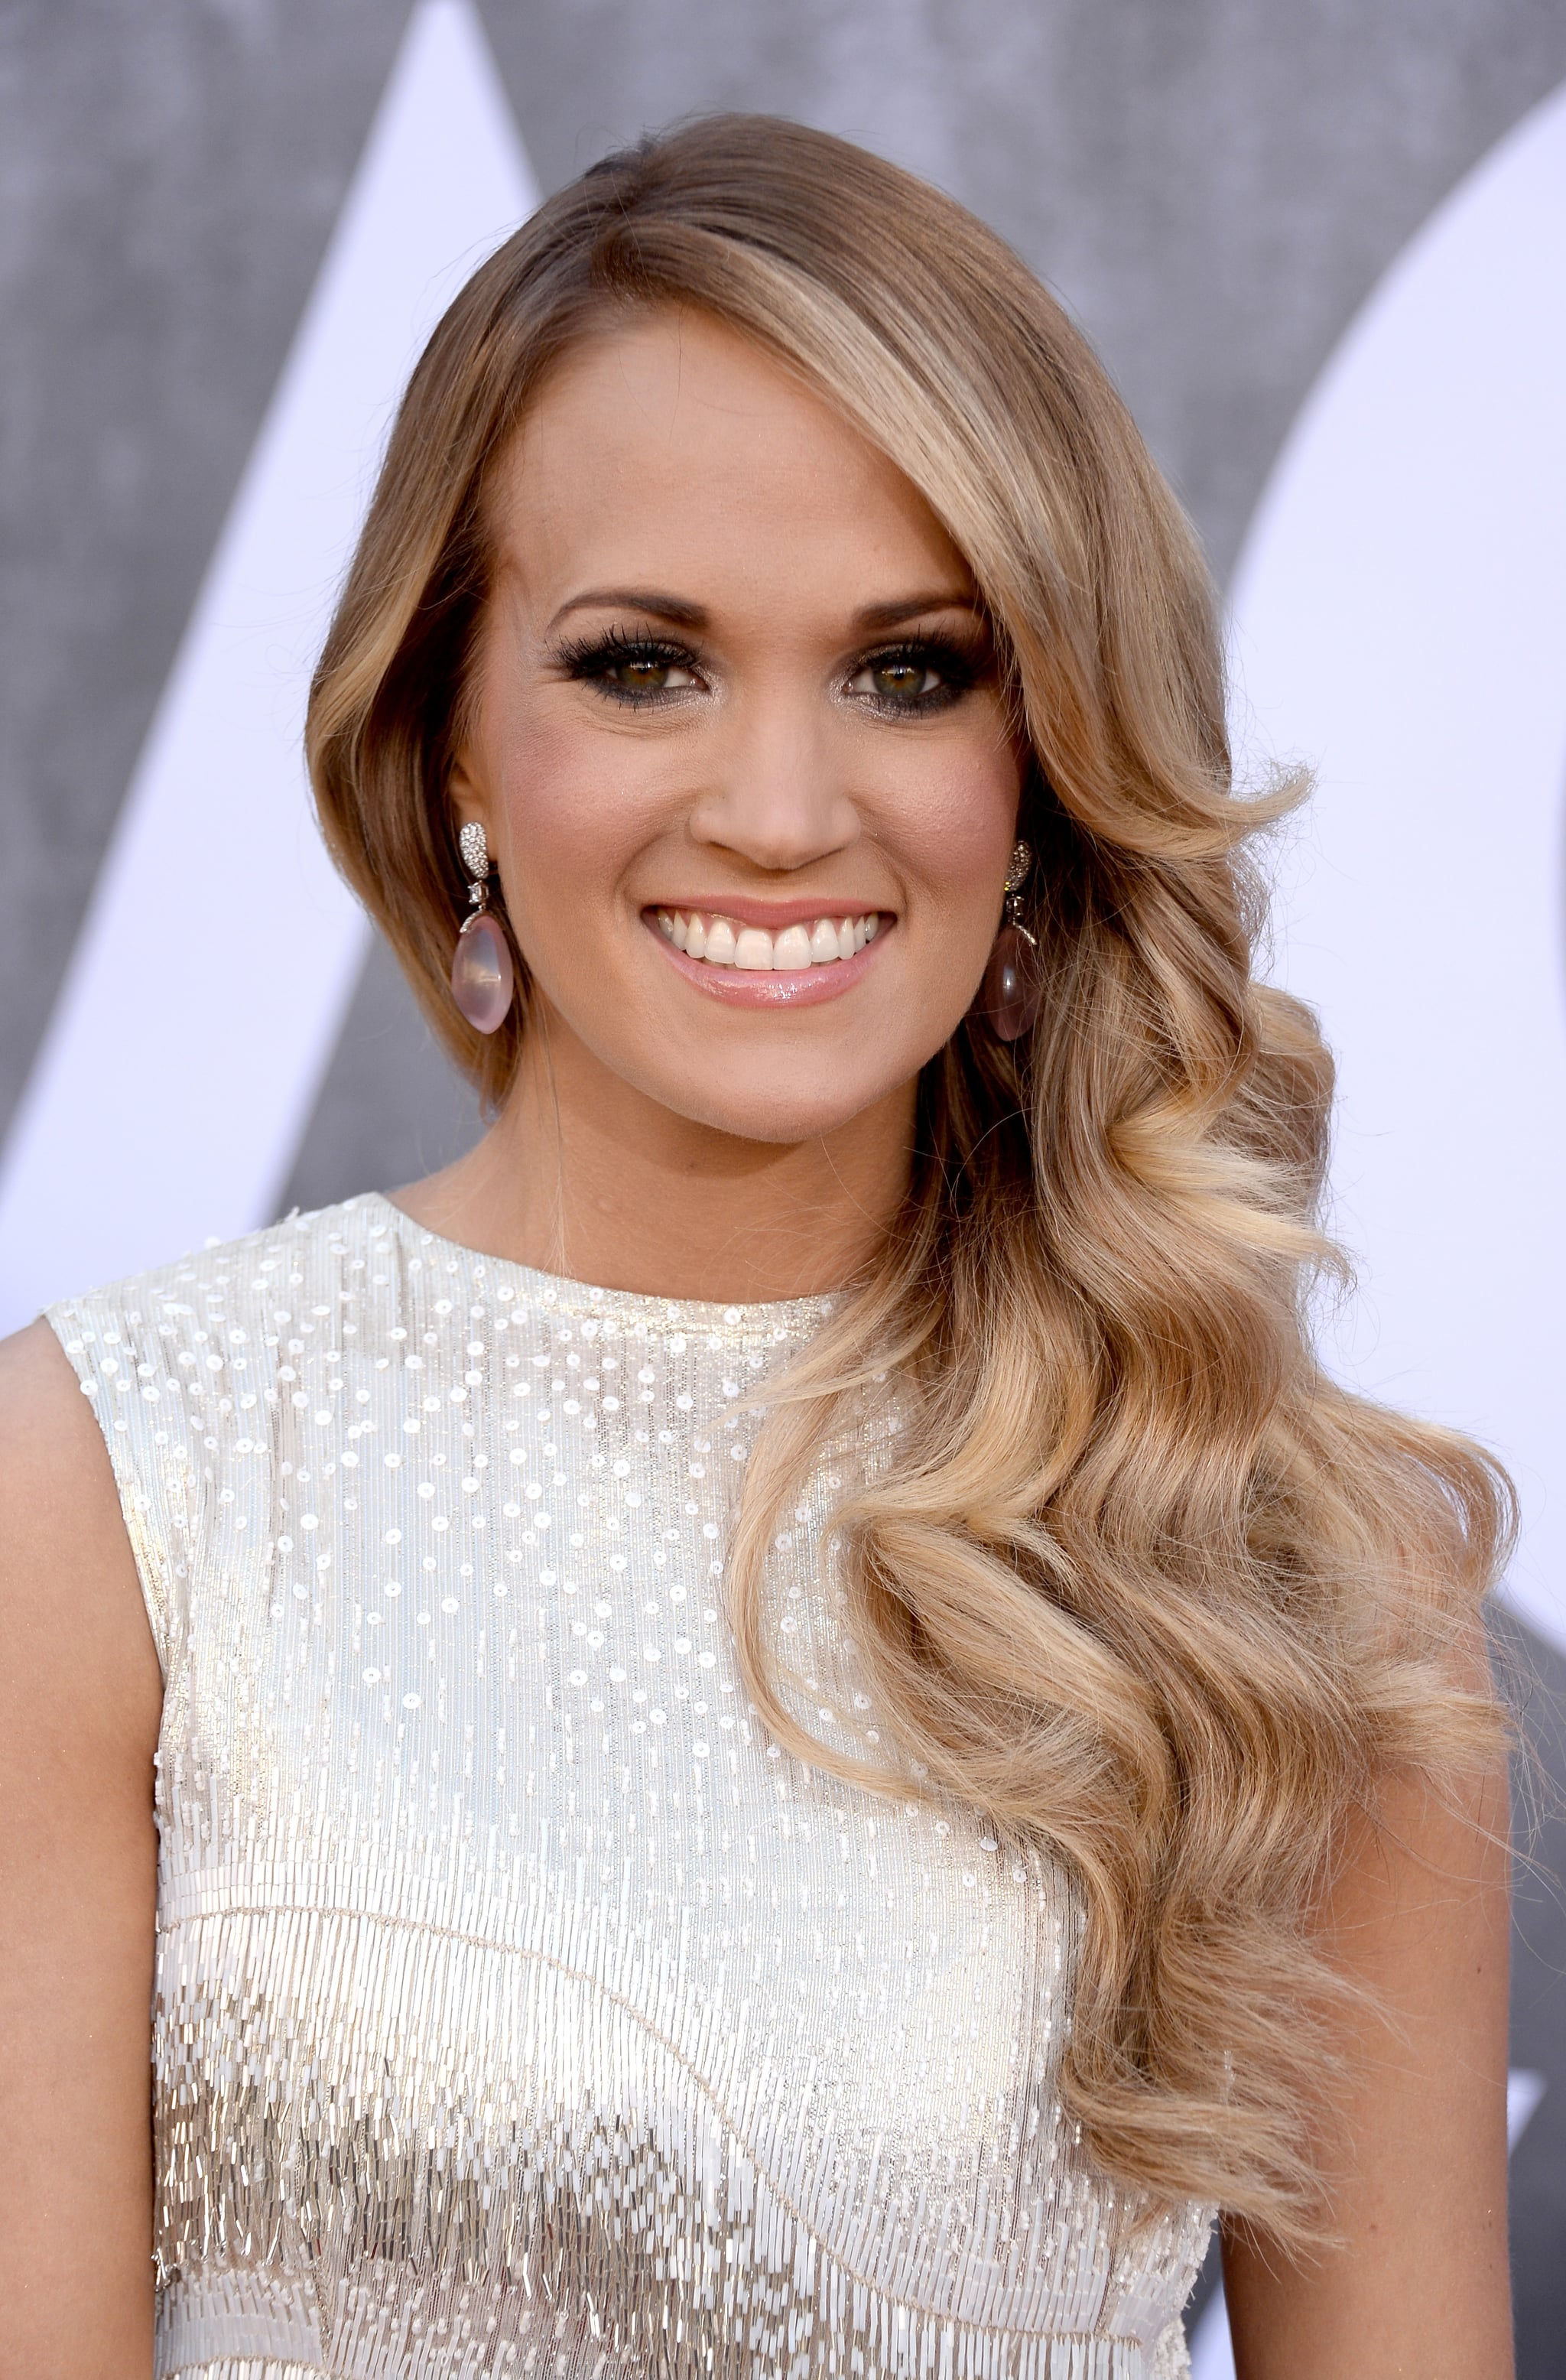 Carrie Underwood at the ACMs